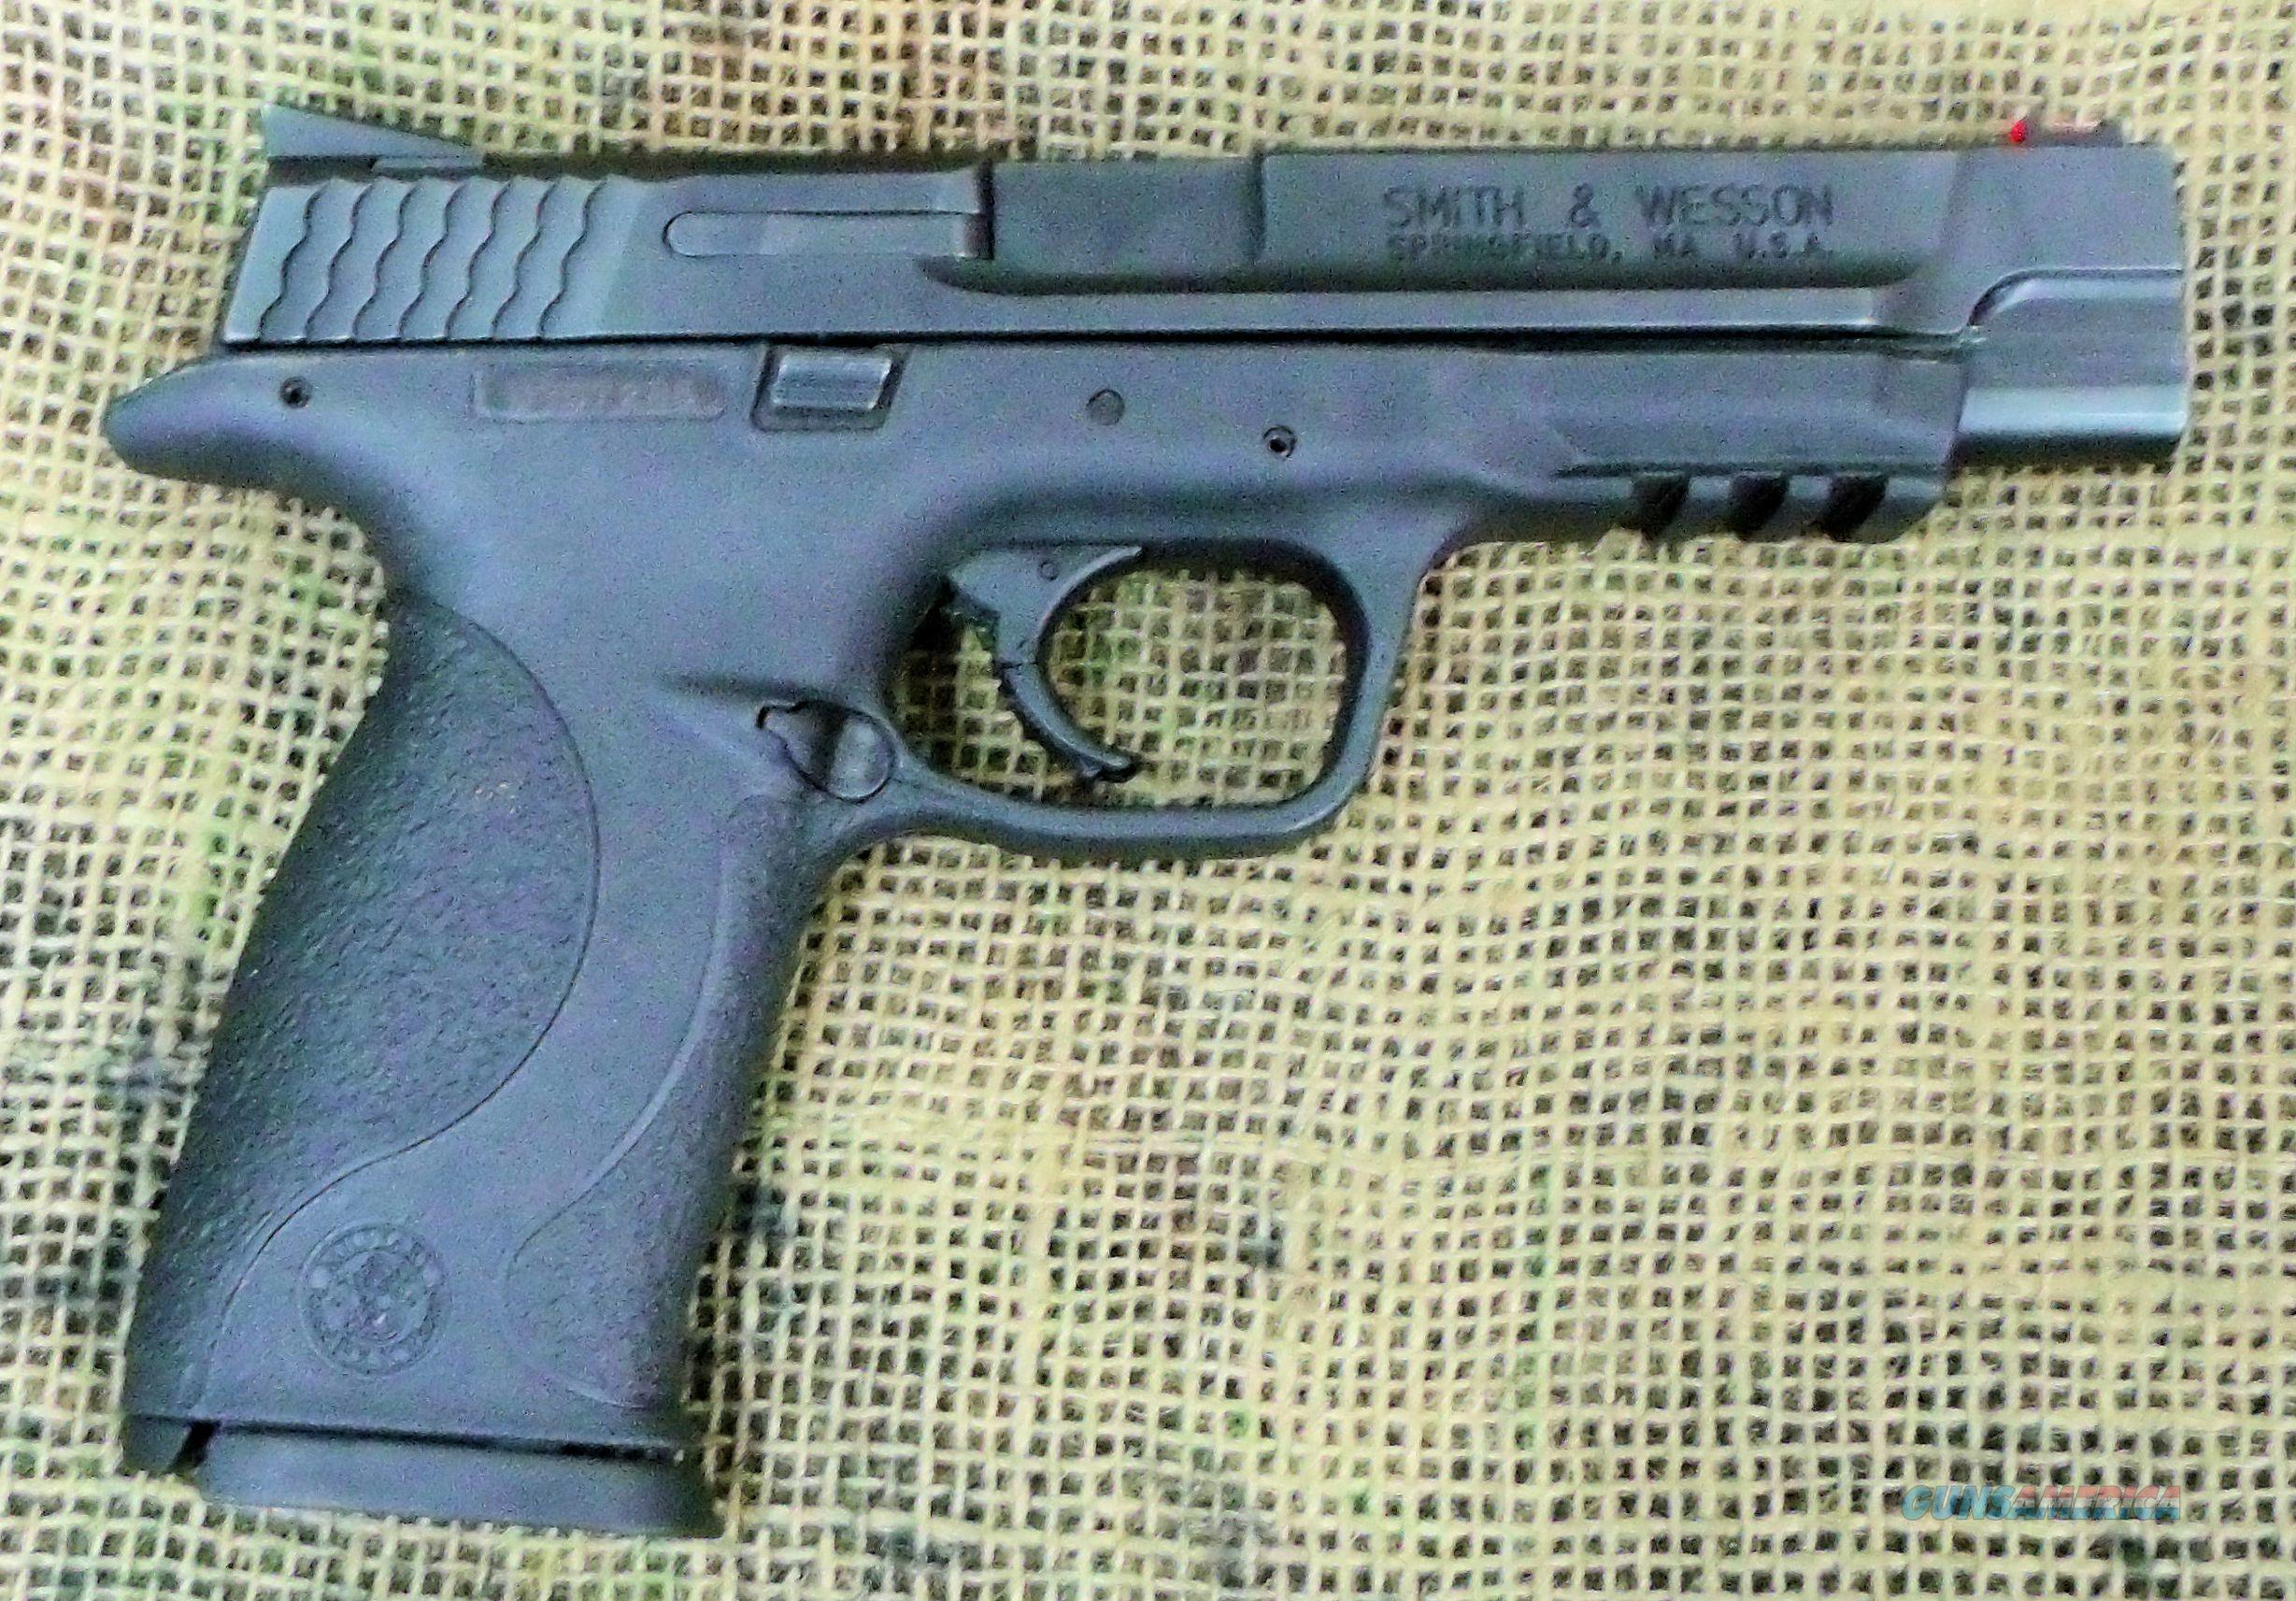 SMITH & WESSON M&P 9 Pro Pistol, 9mm Cal.  Guns > Pistols > Smith & Wesson Pistols - Autos > Polymer Frame